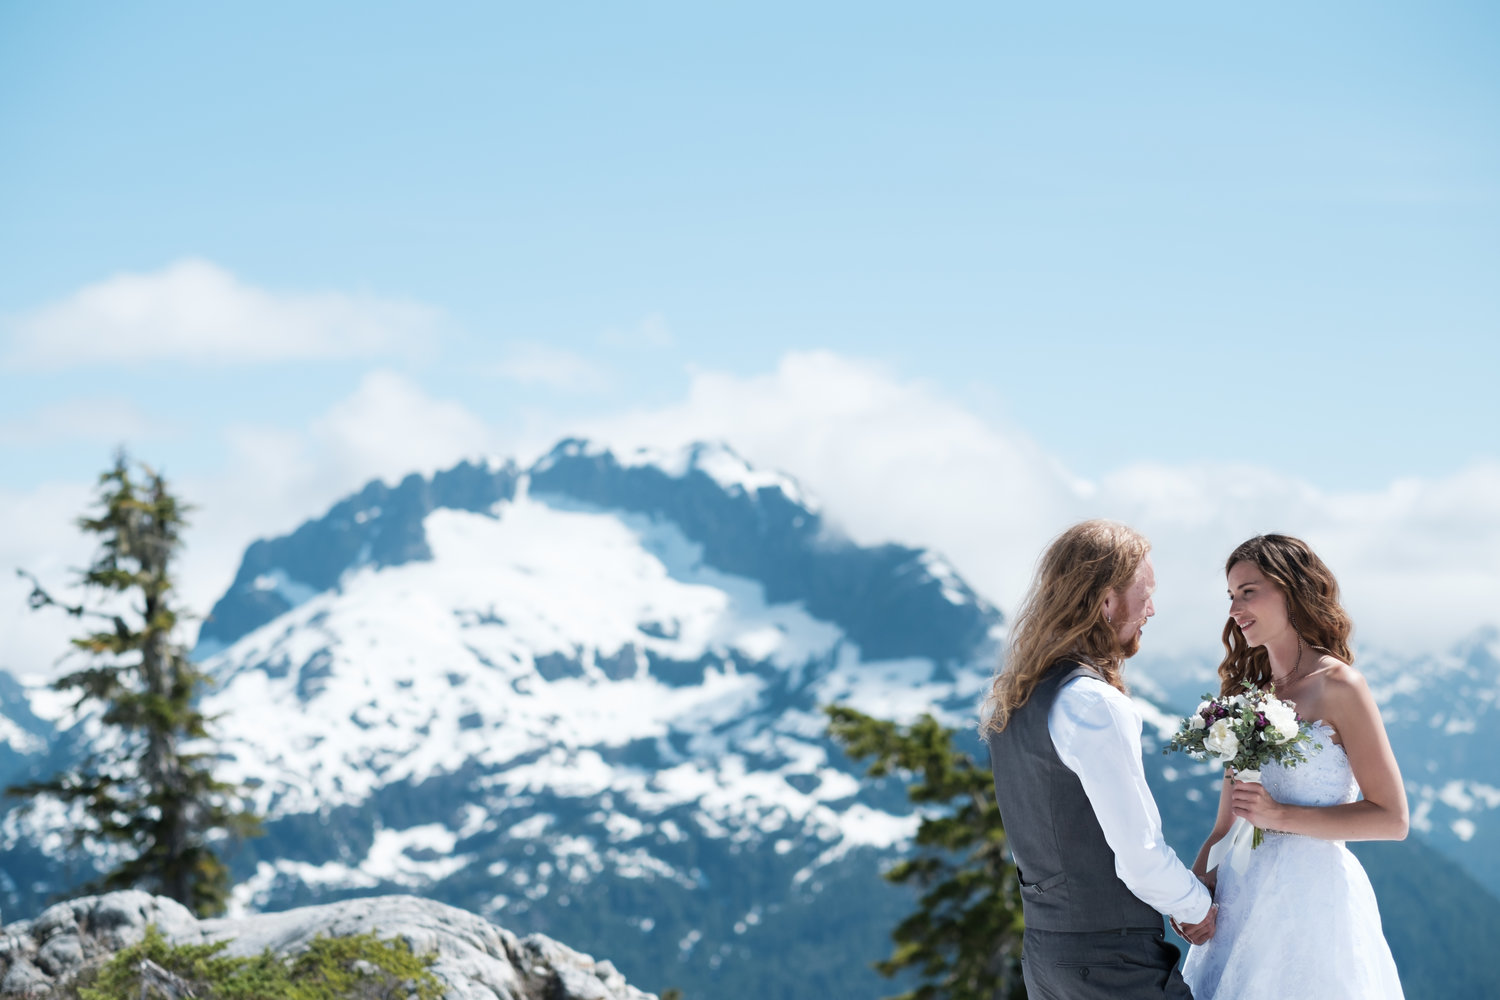 Mountain Top Elopement Vancouver Island West Coast Weddings BC Magazine